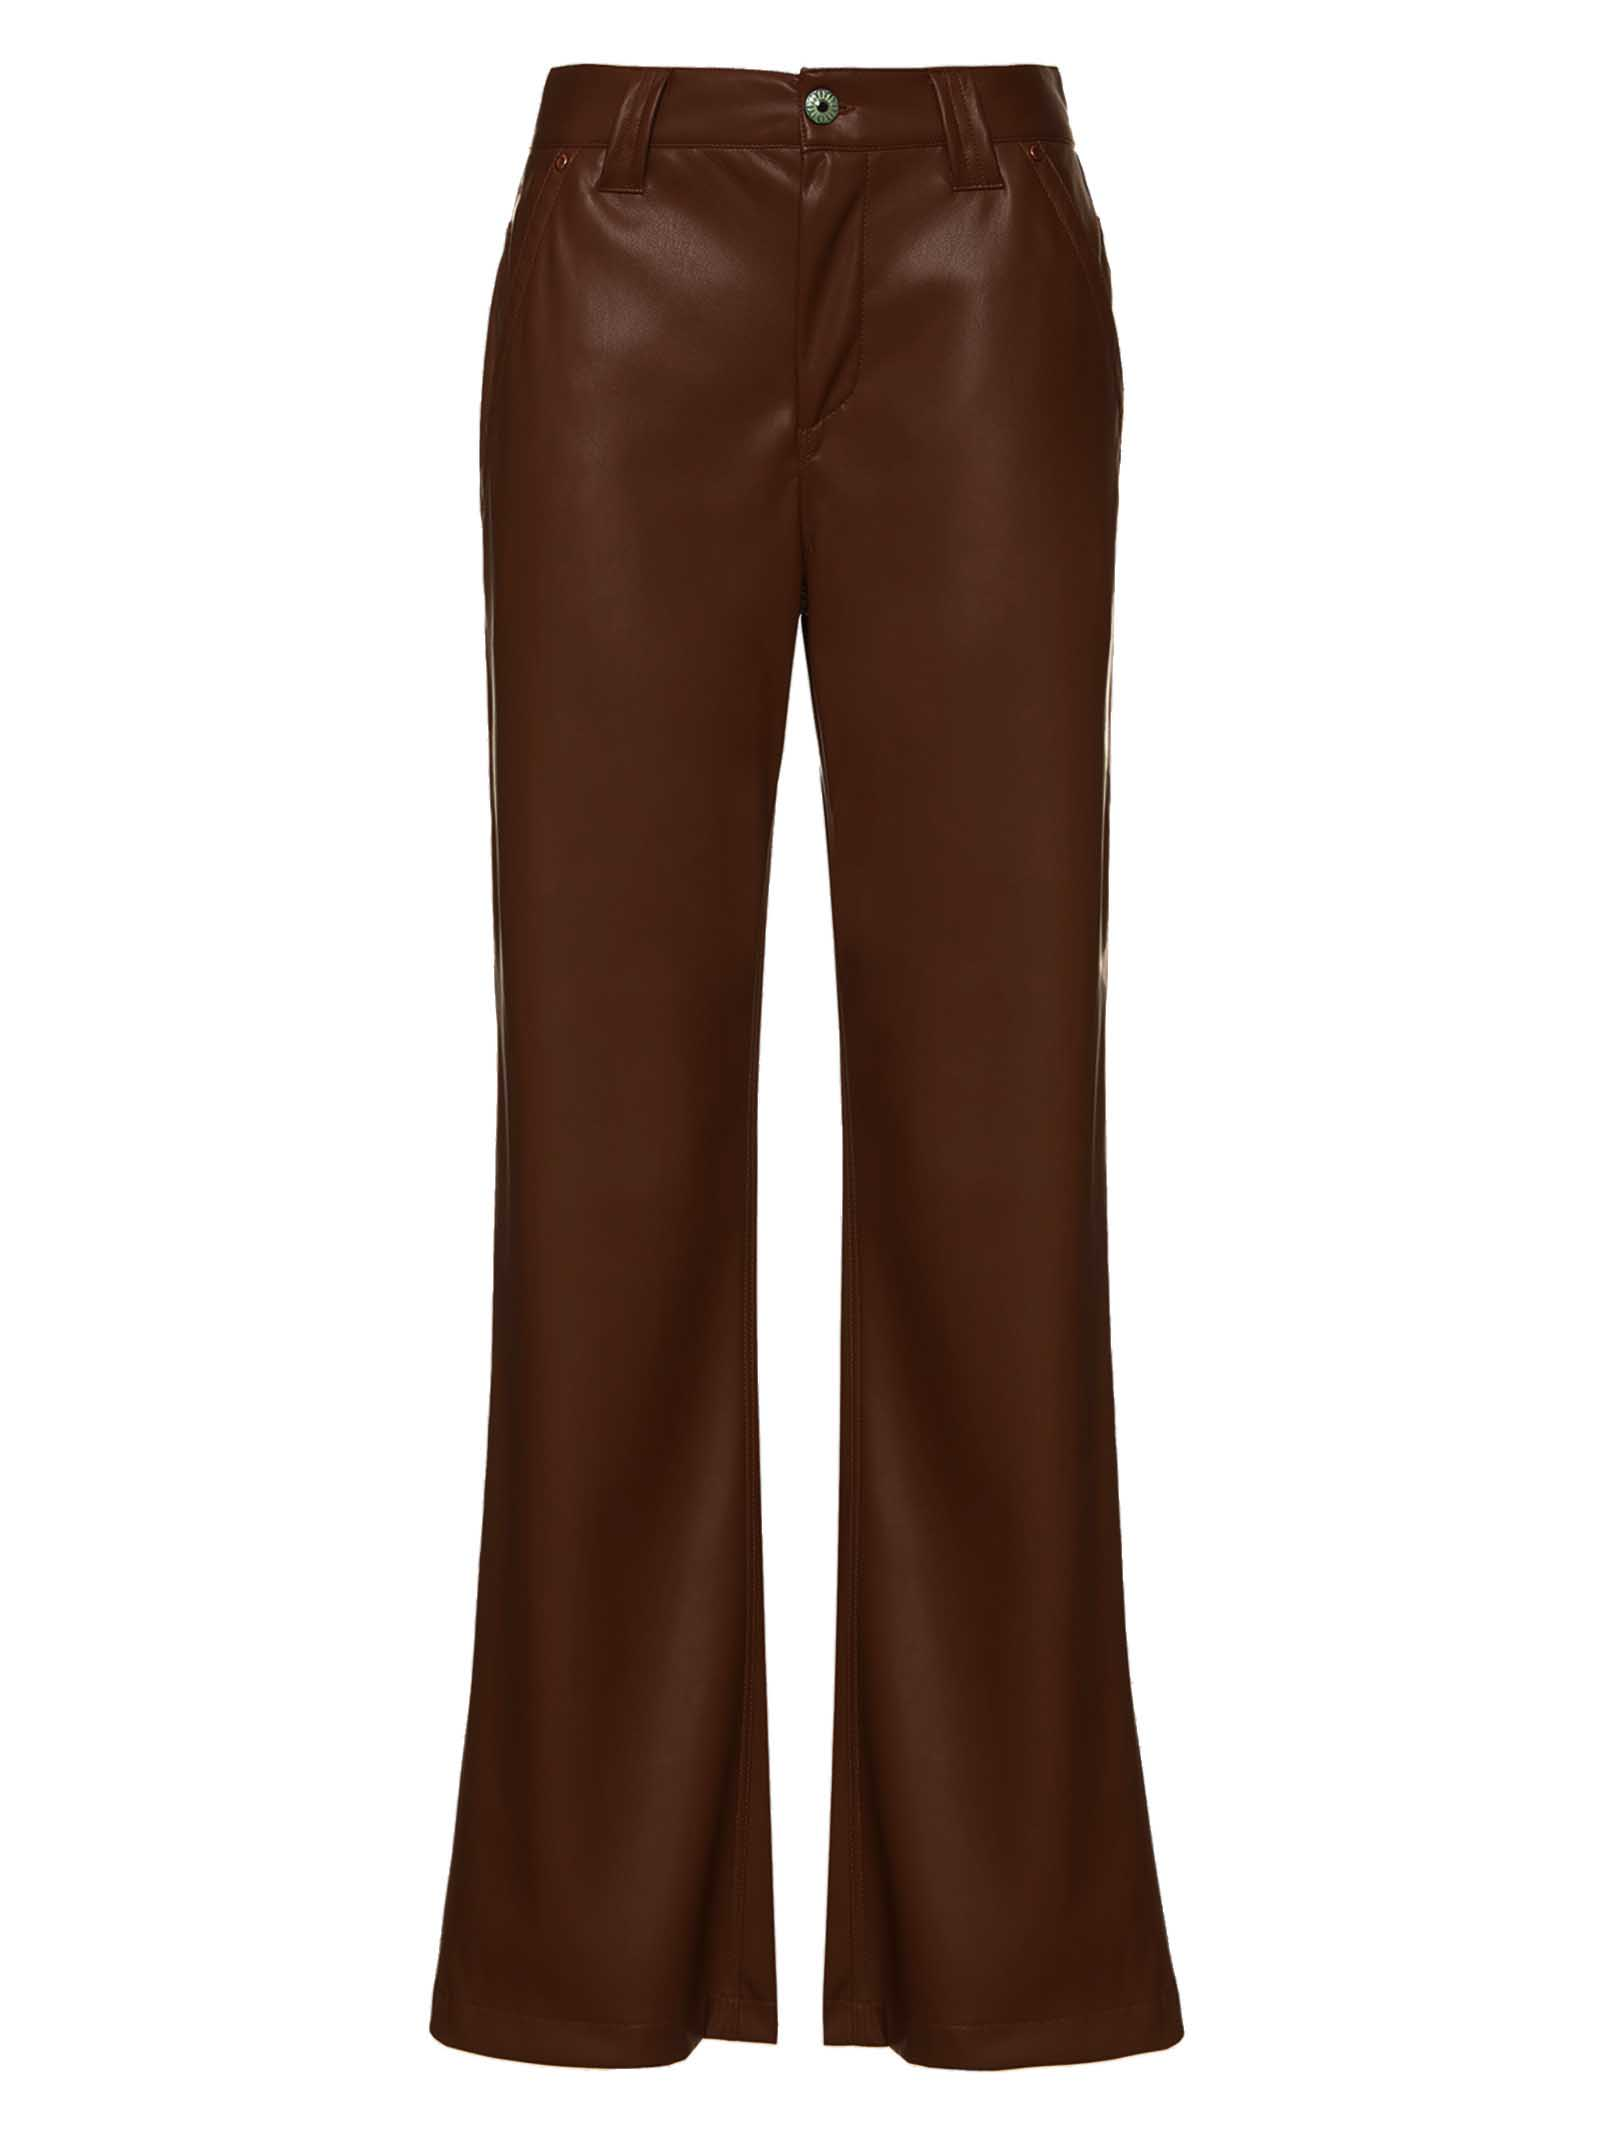 Women's Clothing Trousers Leather in Brown Eco-Leather Denim Cut and Straight Leg Maliparmi | Skirts and Pants | JH74615056940007